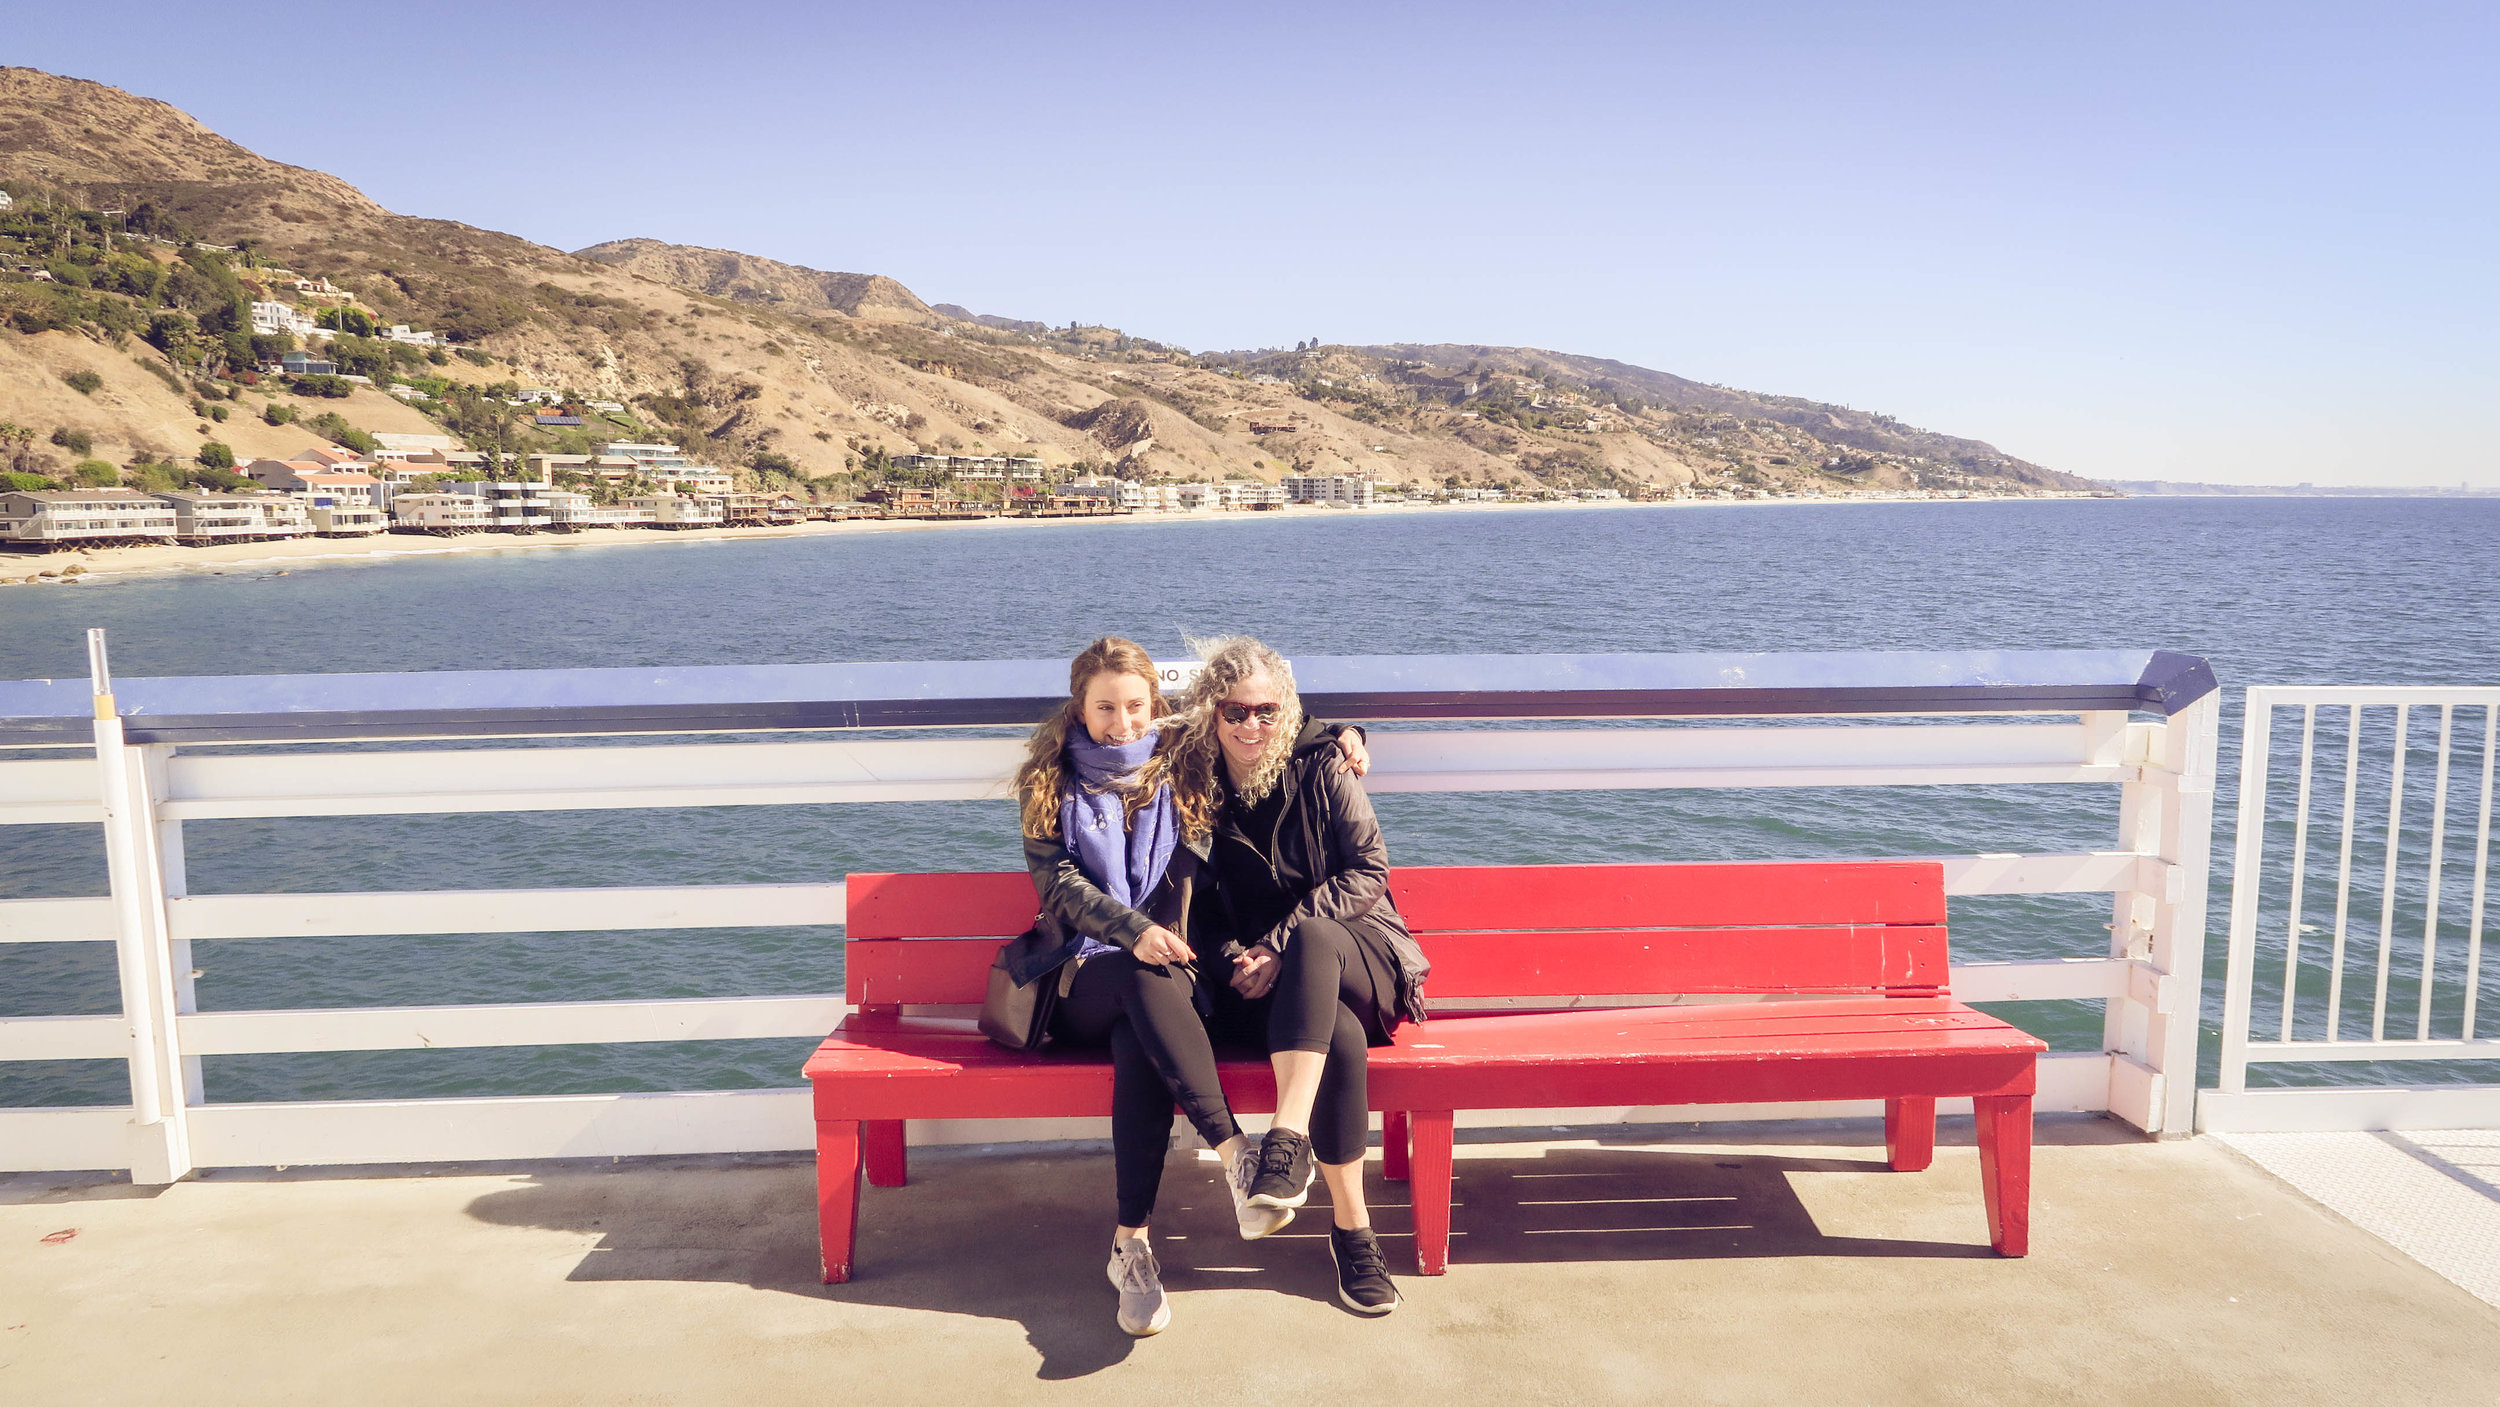 Red Benches in Malibu are made for Mother Daughter pictures